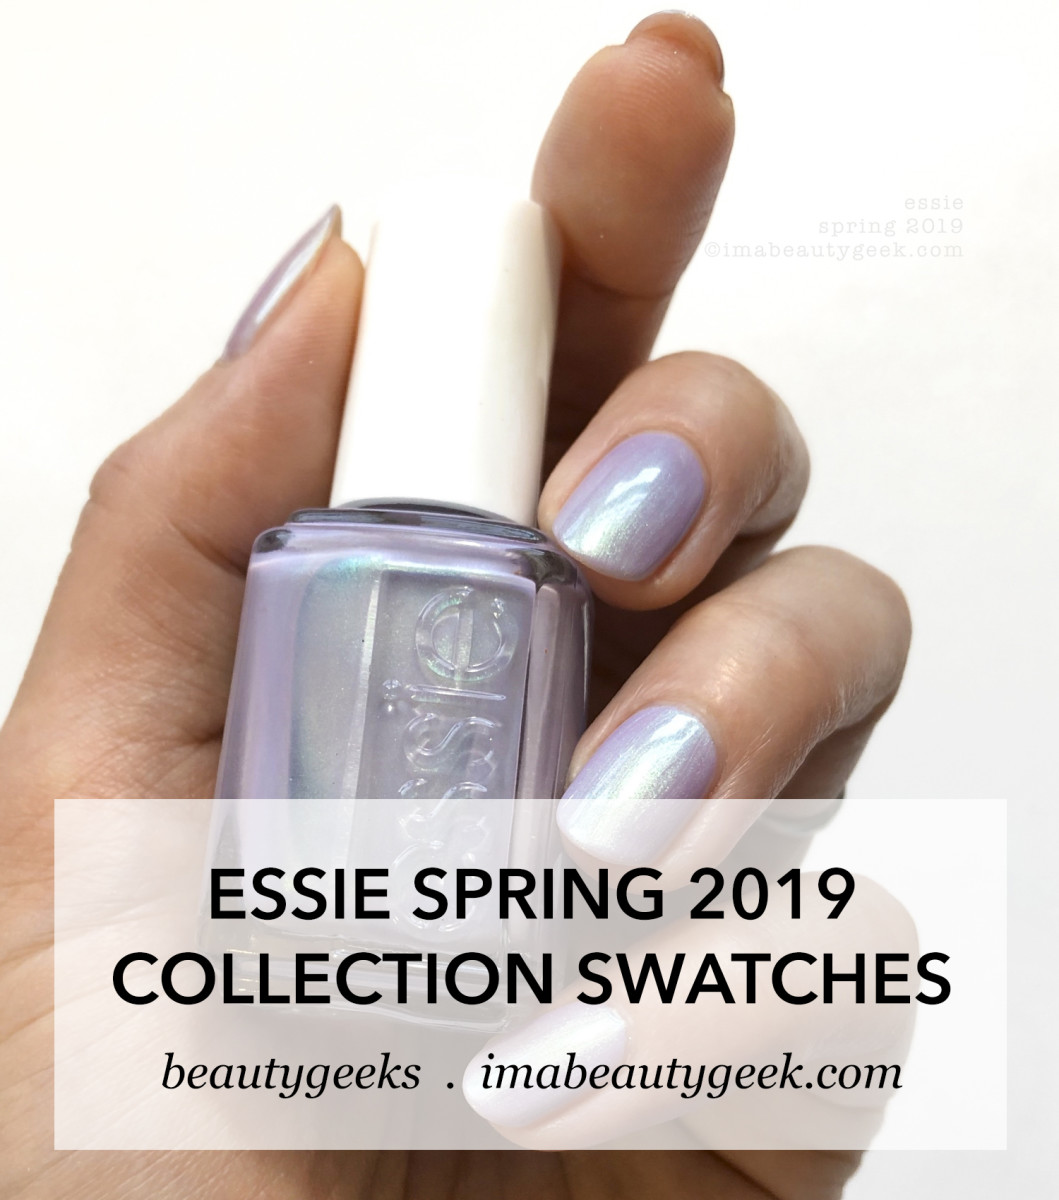 Essie Spring 2019 Collection Swatches Review Tiers of Joy